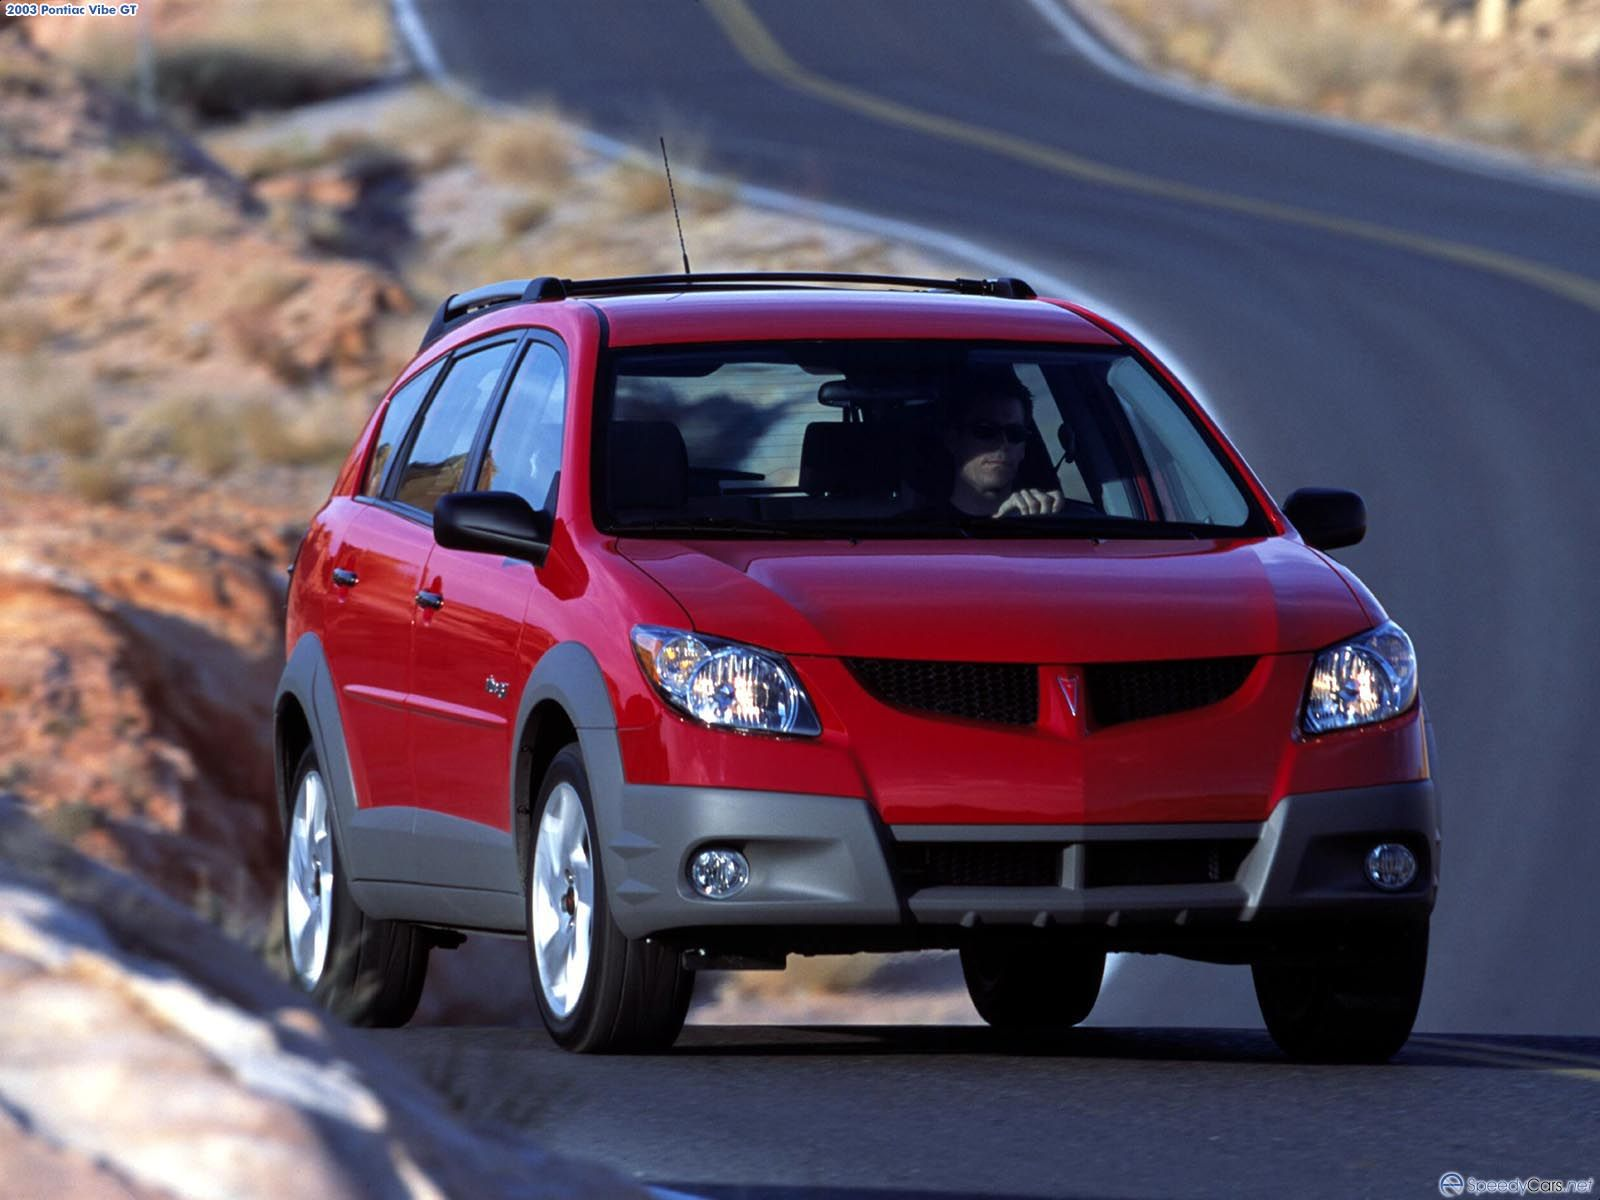 Pontiac Vibe photo 3103